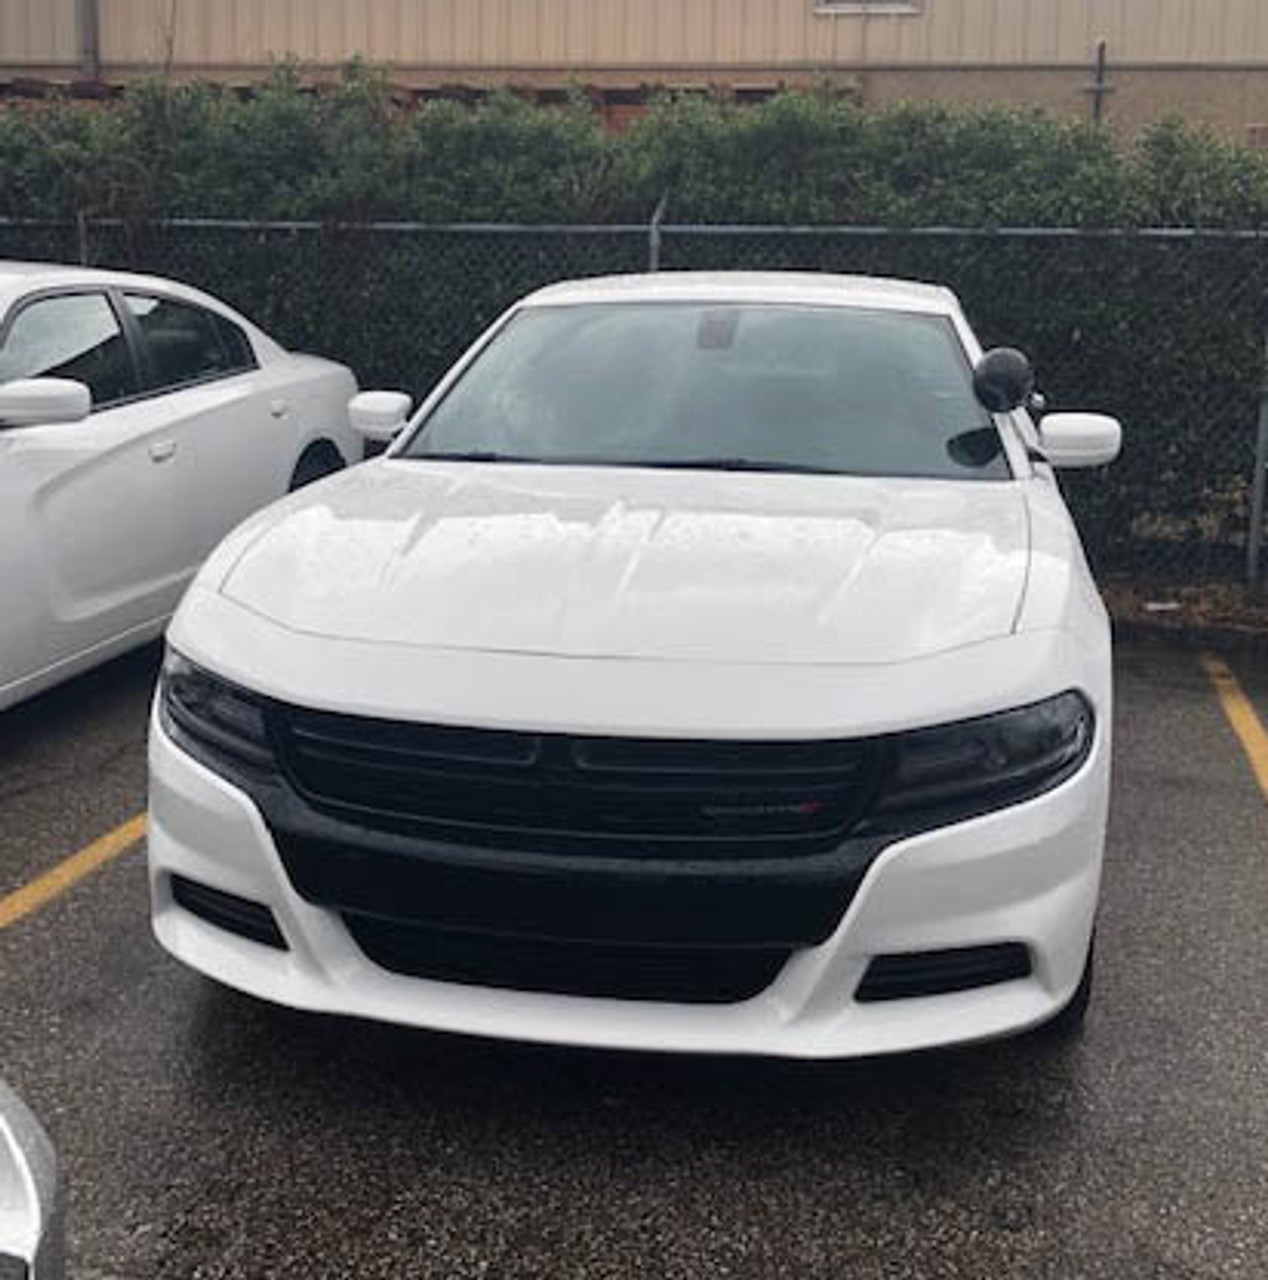 New 2019 White Dodge Charger V6 2WD ready to be built as a Marked Patrol Package Police Pursuit Car,  choose any color LED Lights, + Delivery